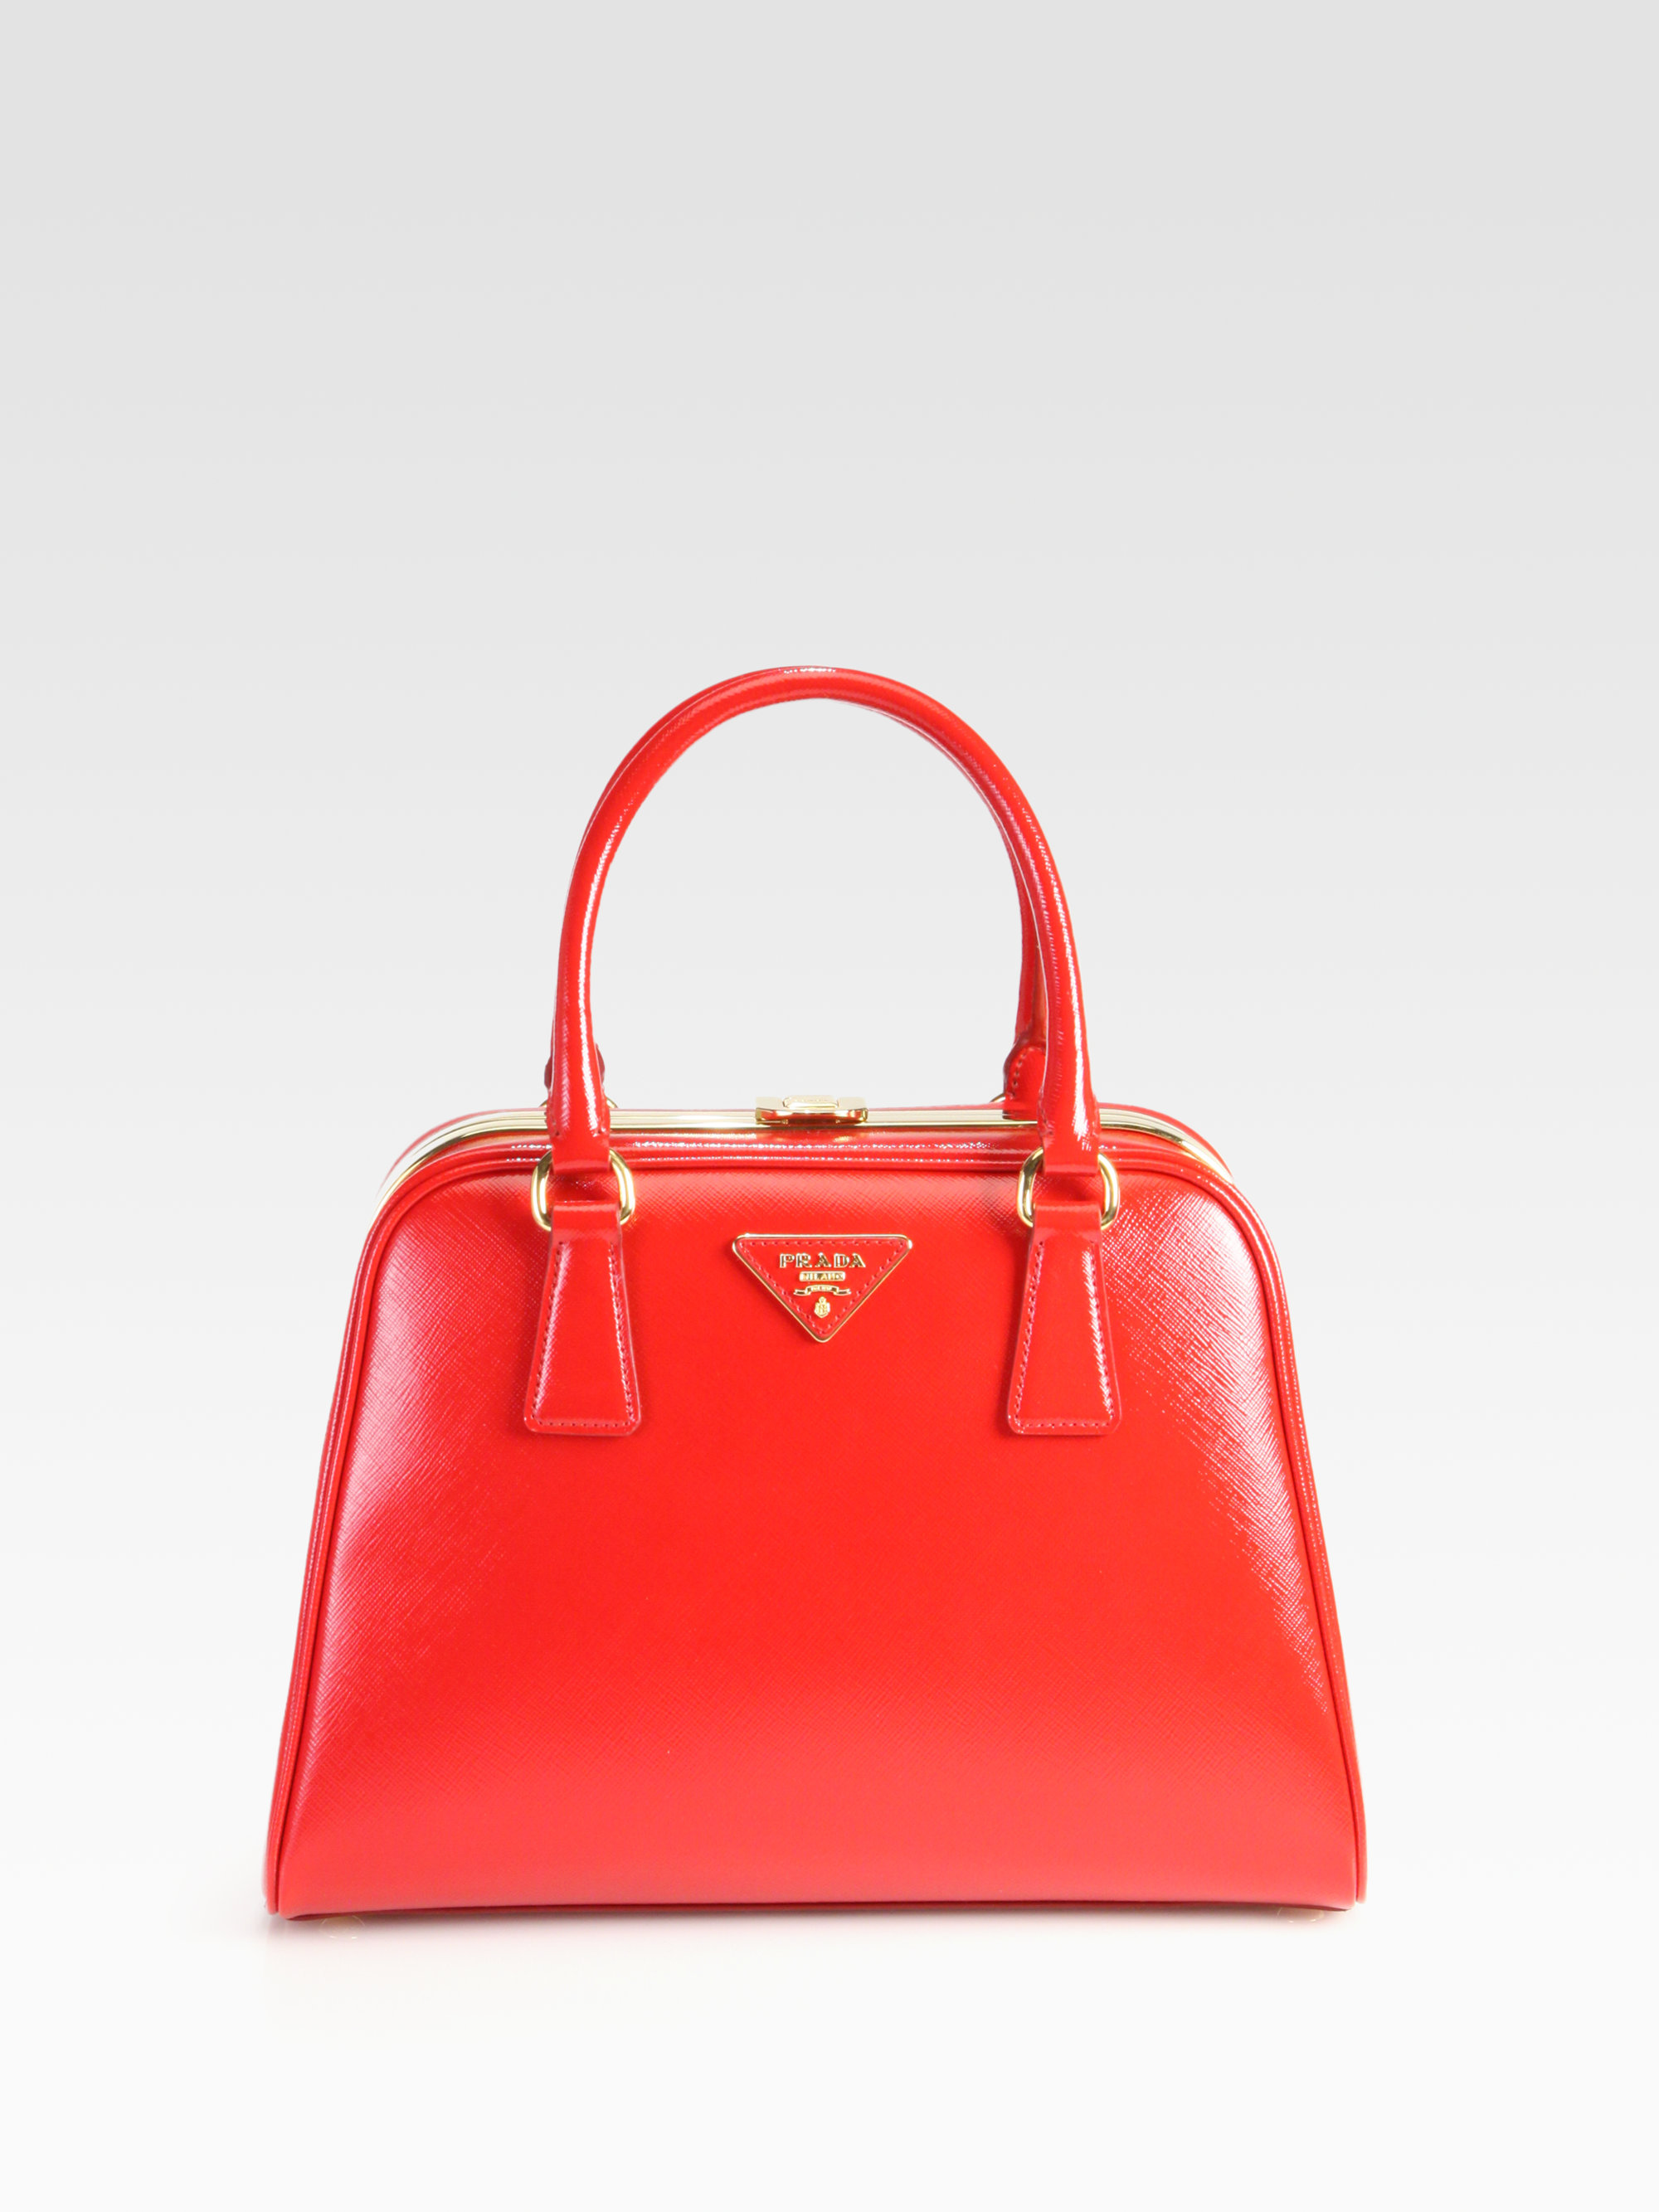 f2ae0ace2d54 ... netherlands prada saffiano vernice frame pyramid top handle bag in red  lyst 7a6ac 33890